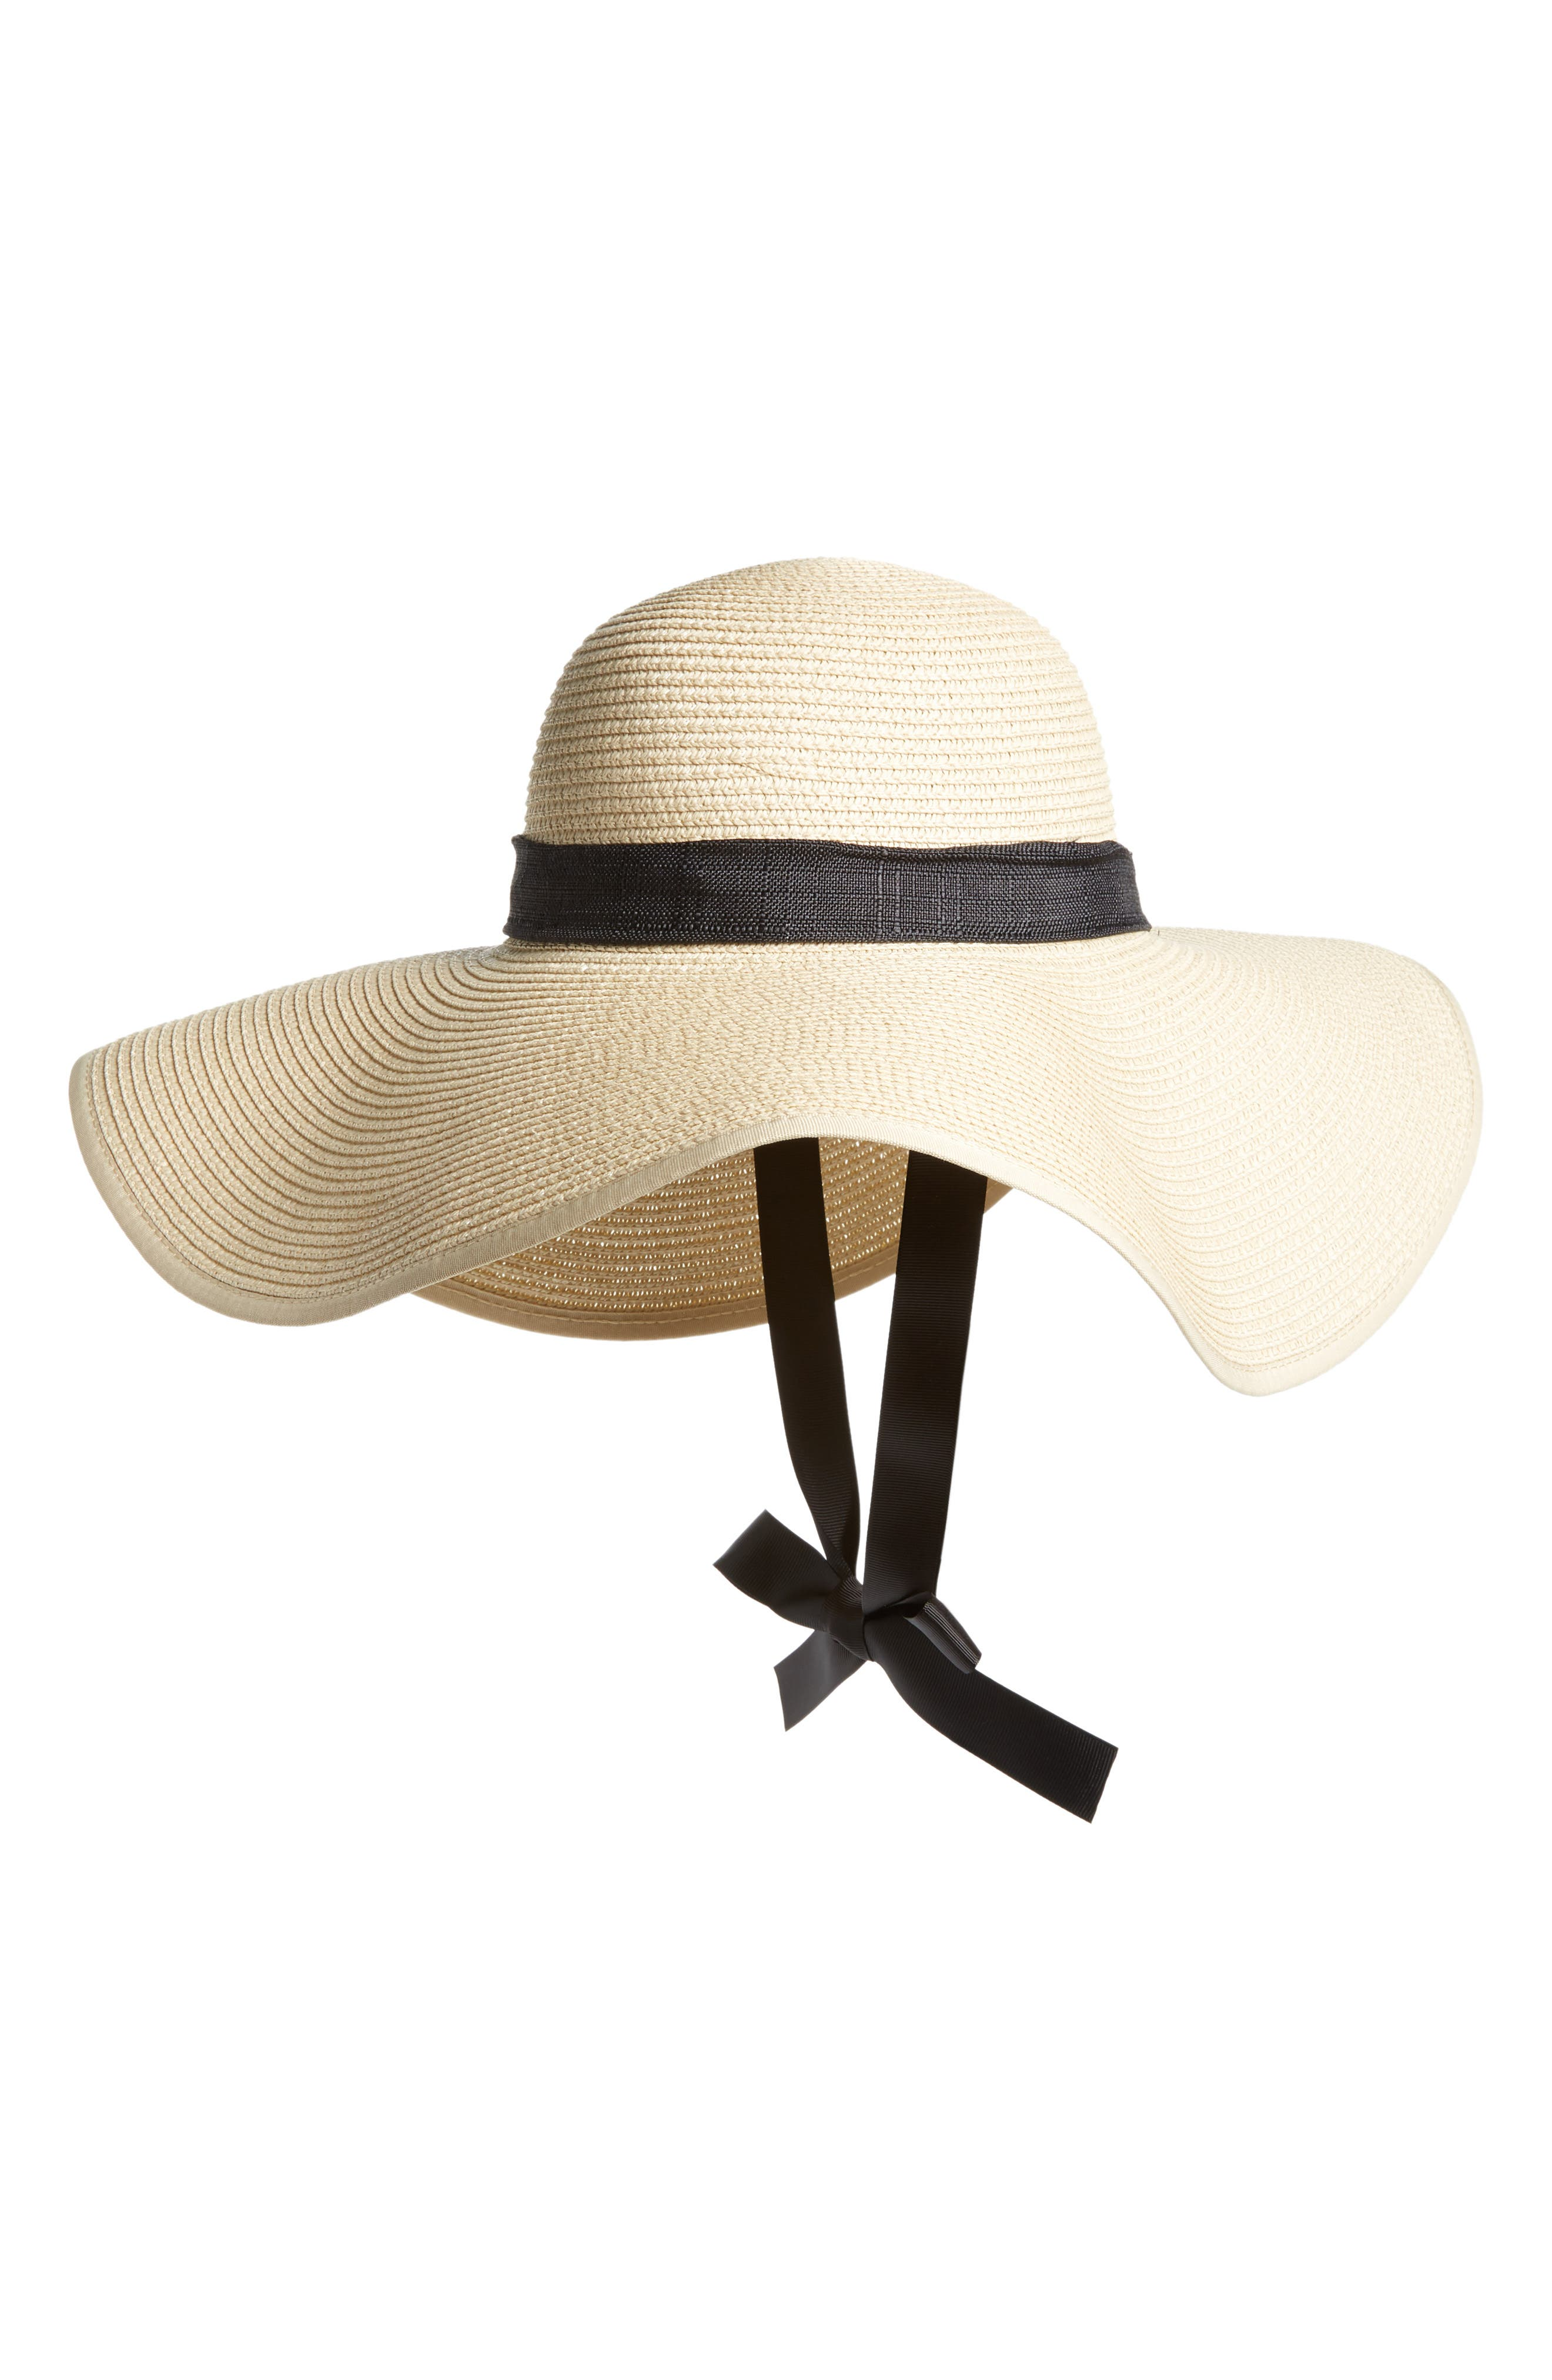 Tie Neck Ribbon Floppy Straw Hat,                             Main thumbnail 1, color,                             Black/ Natural